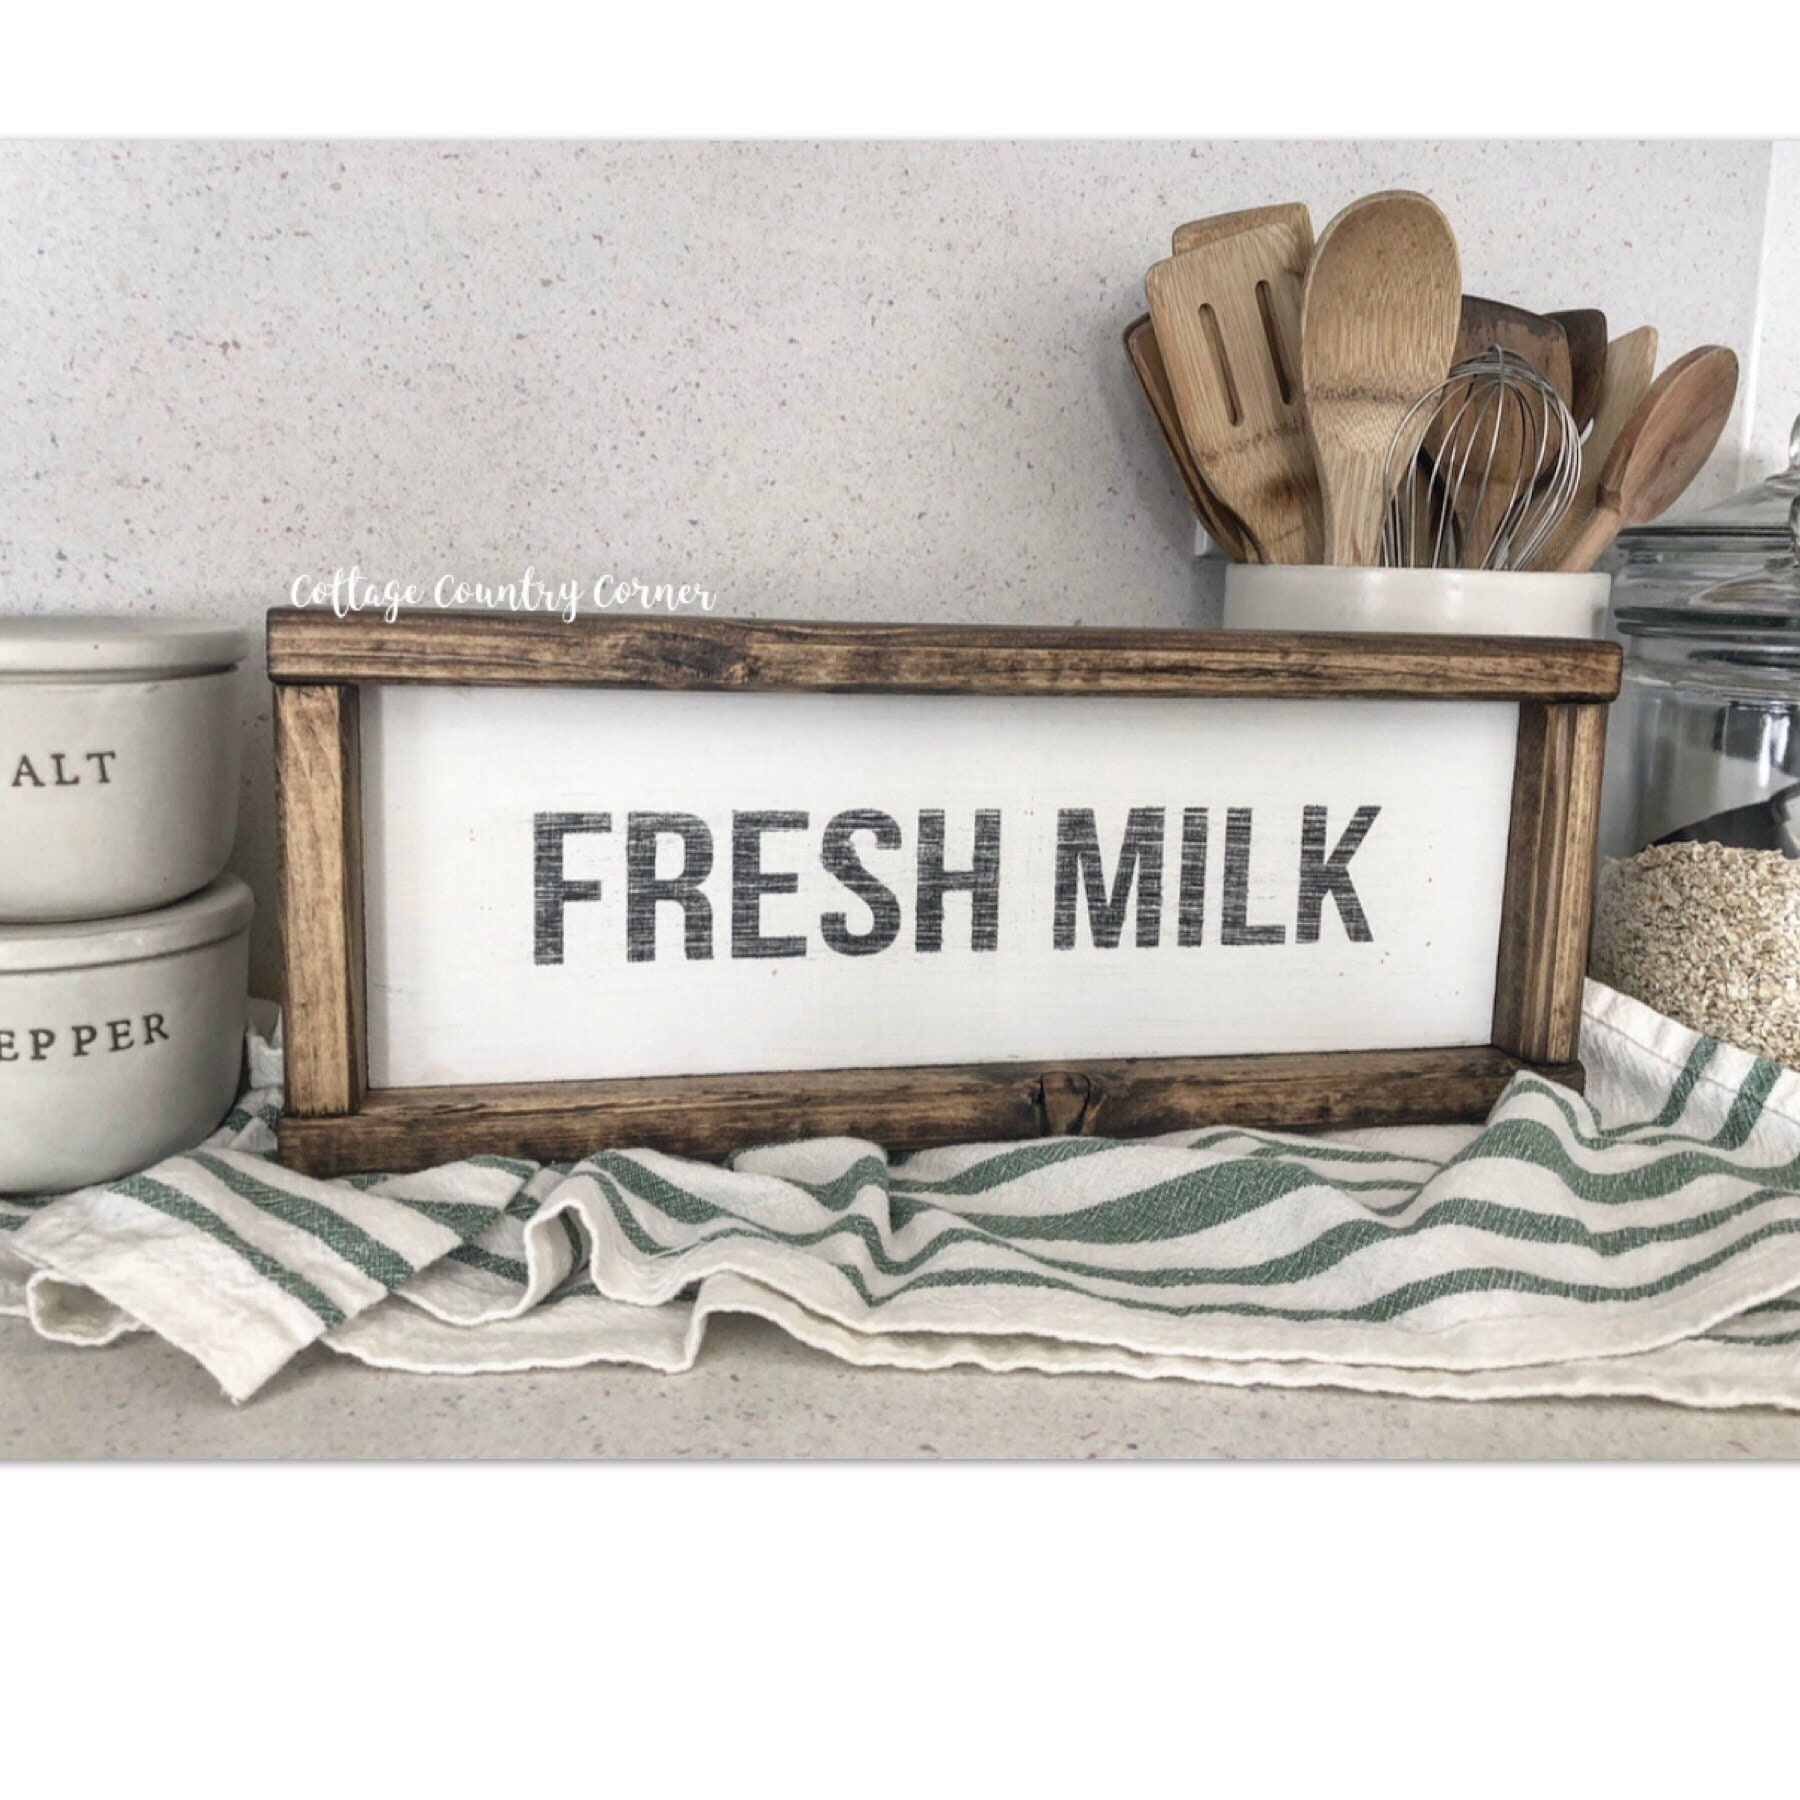 Fresh milk sign wood fresh milk sign farmhouse decor farmhouse kitchen farmhouse kitchen decor kitchen decor home decor